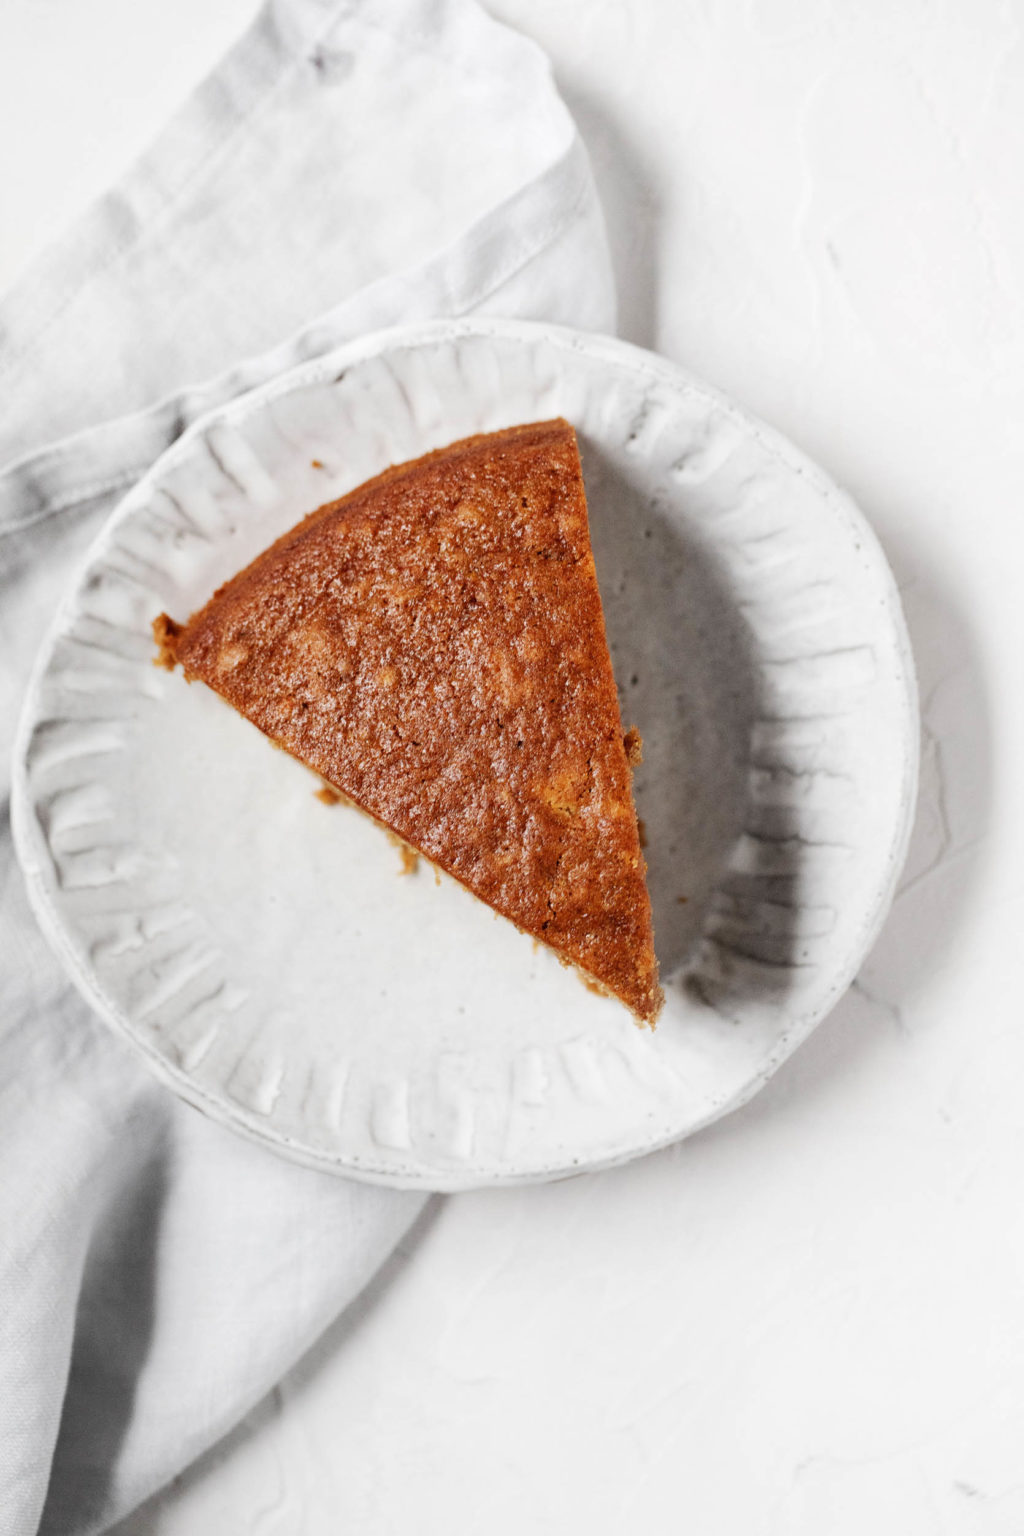 An overhead image of a triangular slice of gingerbread, laid out on a dessert plate with a gray napkin.